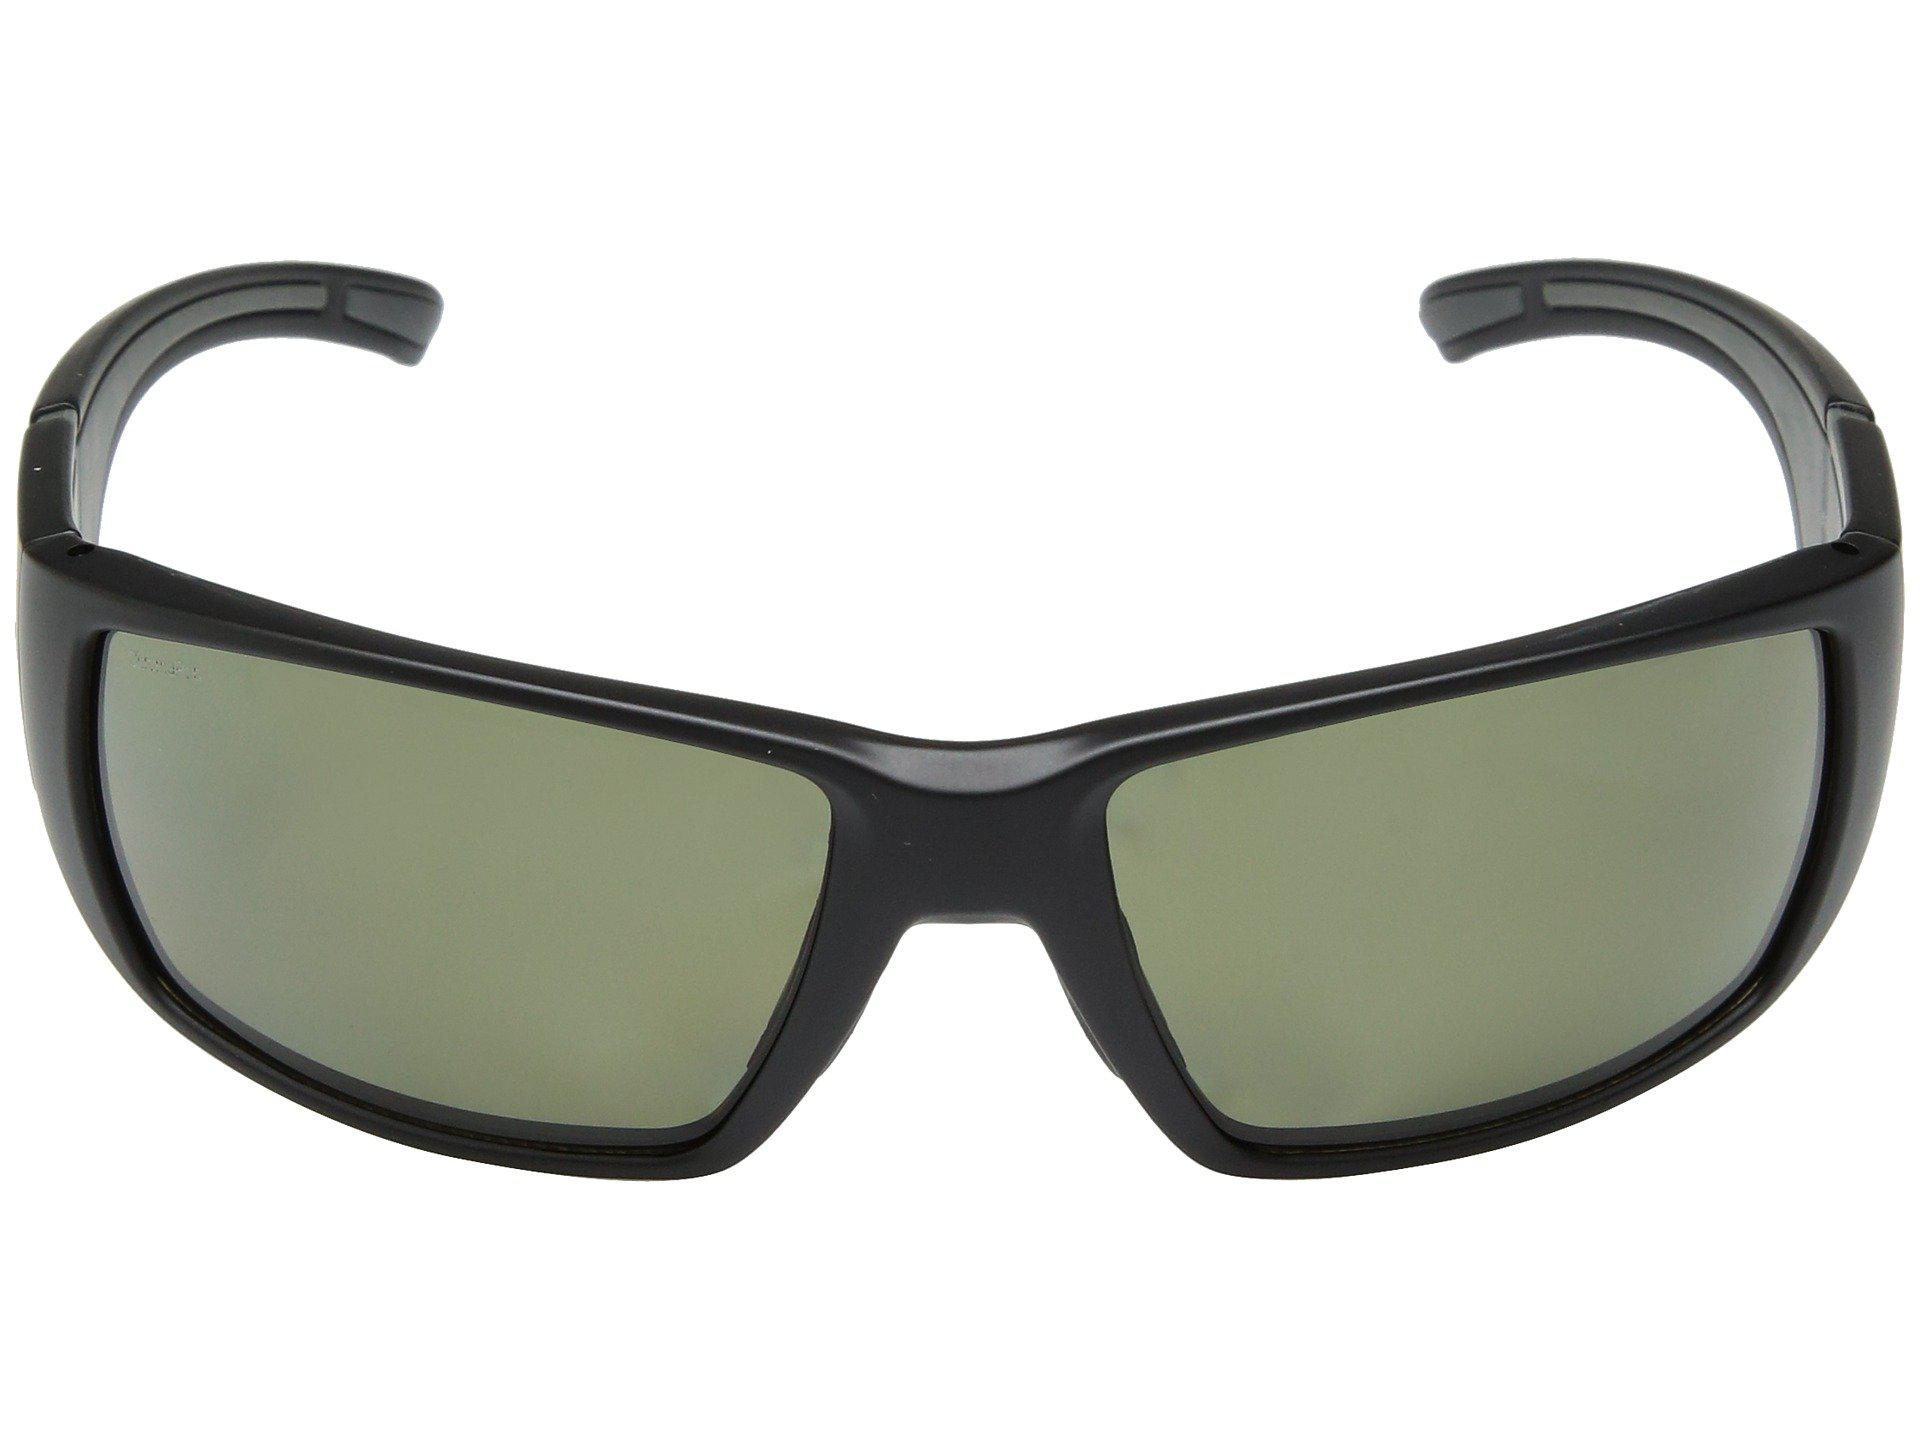 583c2ed2f2f Smith Optics - Transfer (matte Black gray Green Chromapoptm Polarized Lens) Athletic  Performance. View fullscreen